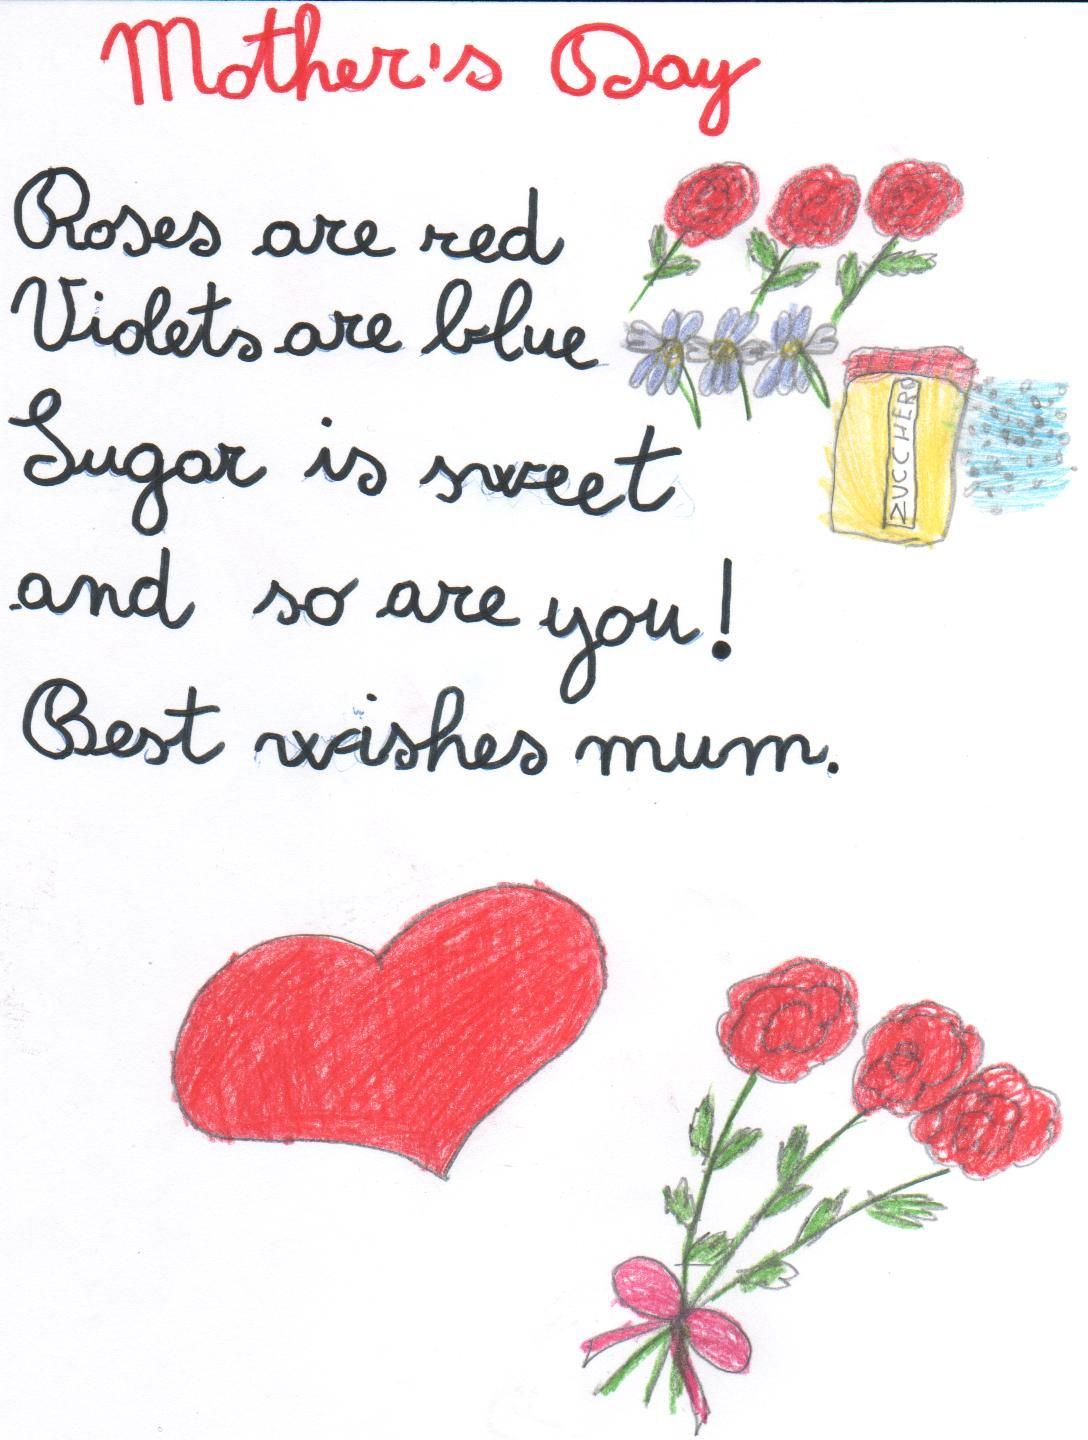 roses are red | Roses are Red.... | Pinterest | Muttertag und Englisch